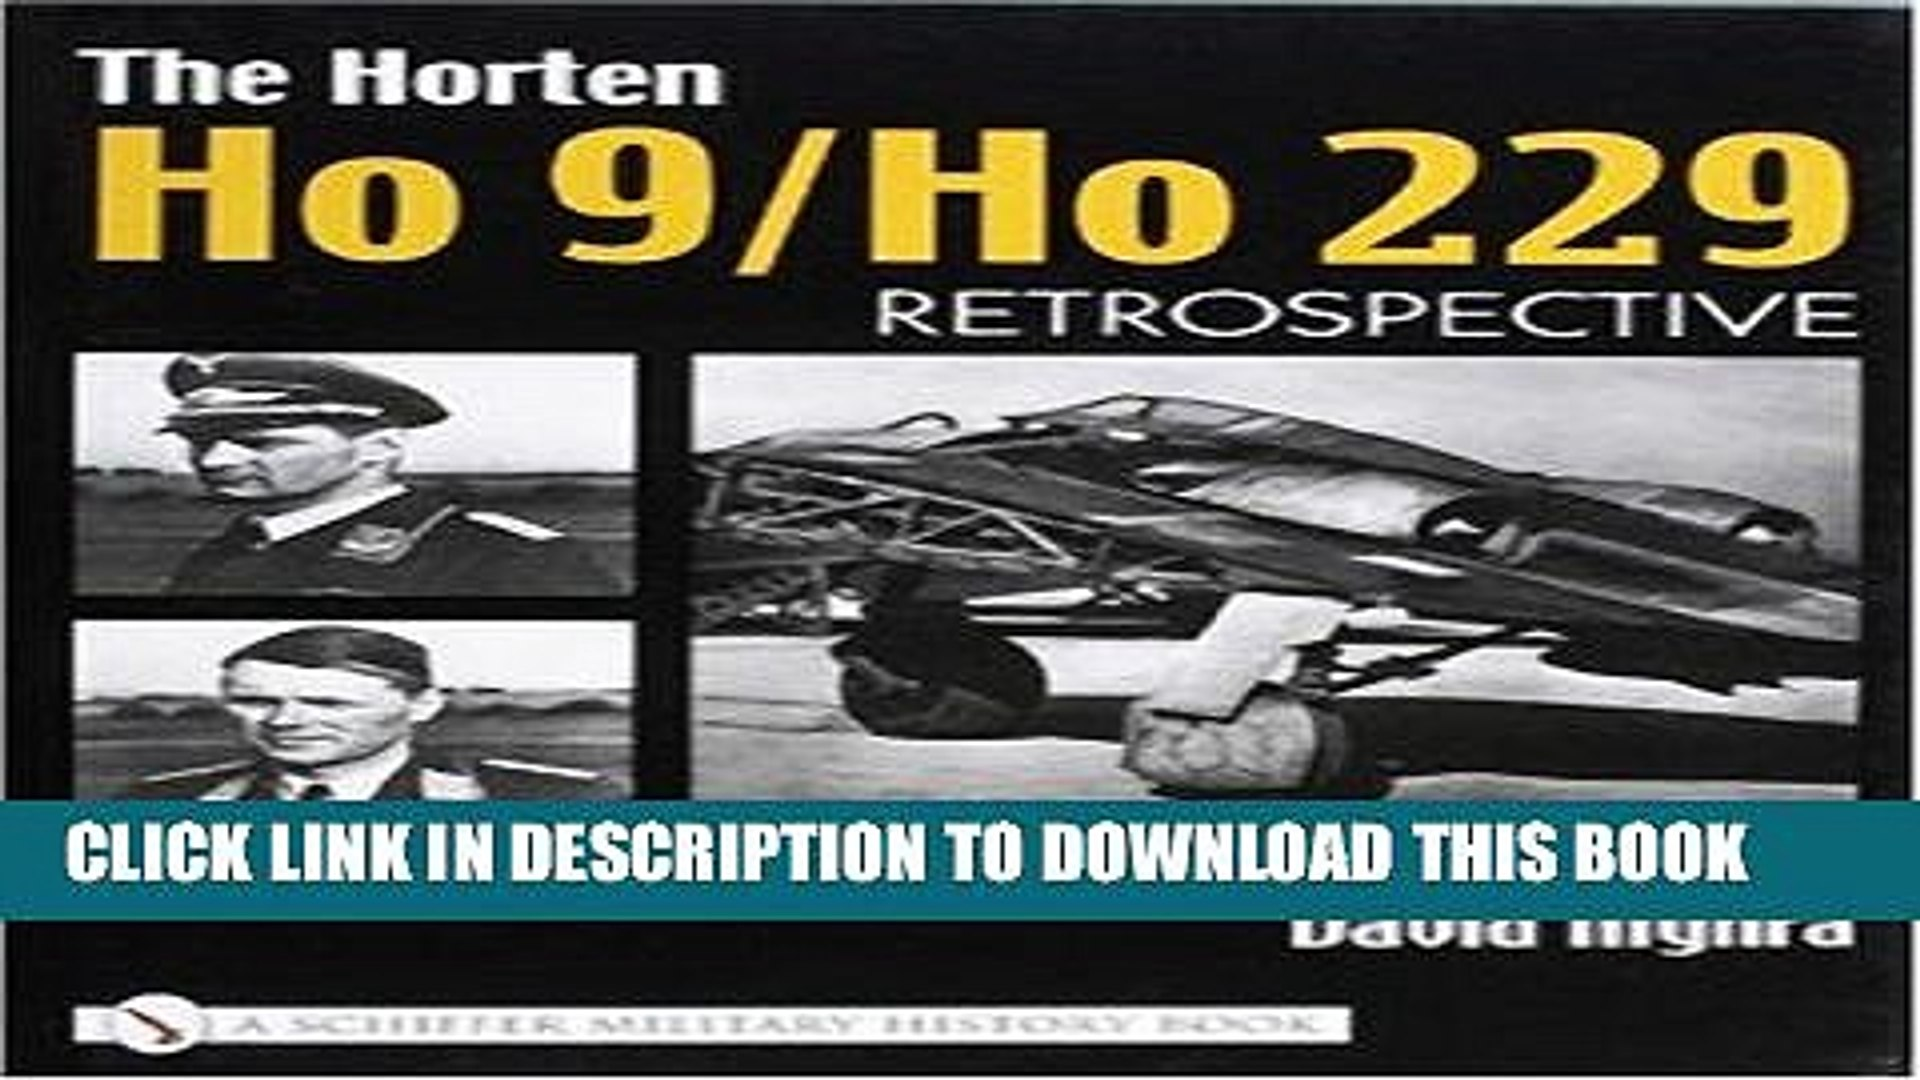 [PDF] Mobi The Horten Ho 9/Ho 229 Vol 1: Retrospective Full Online